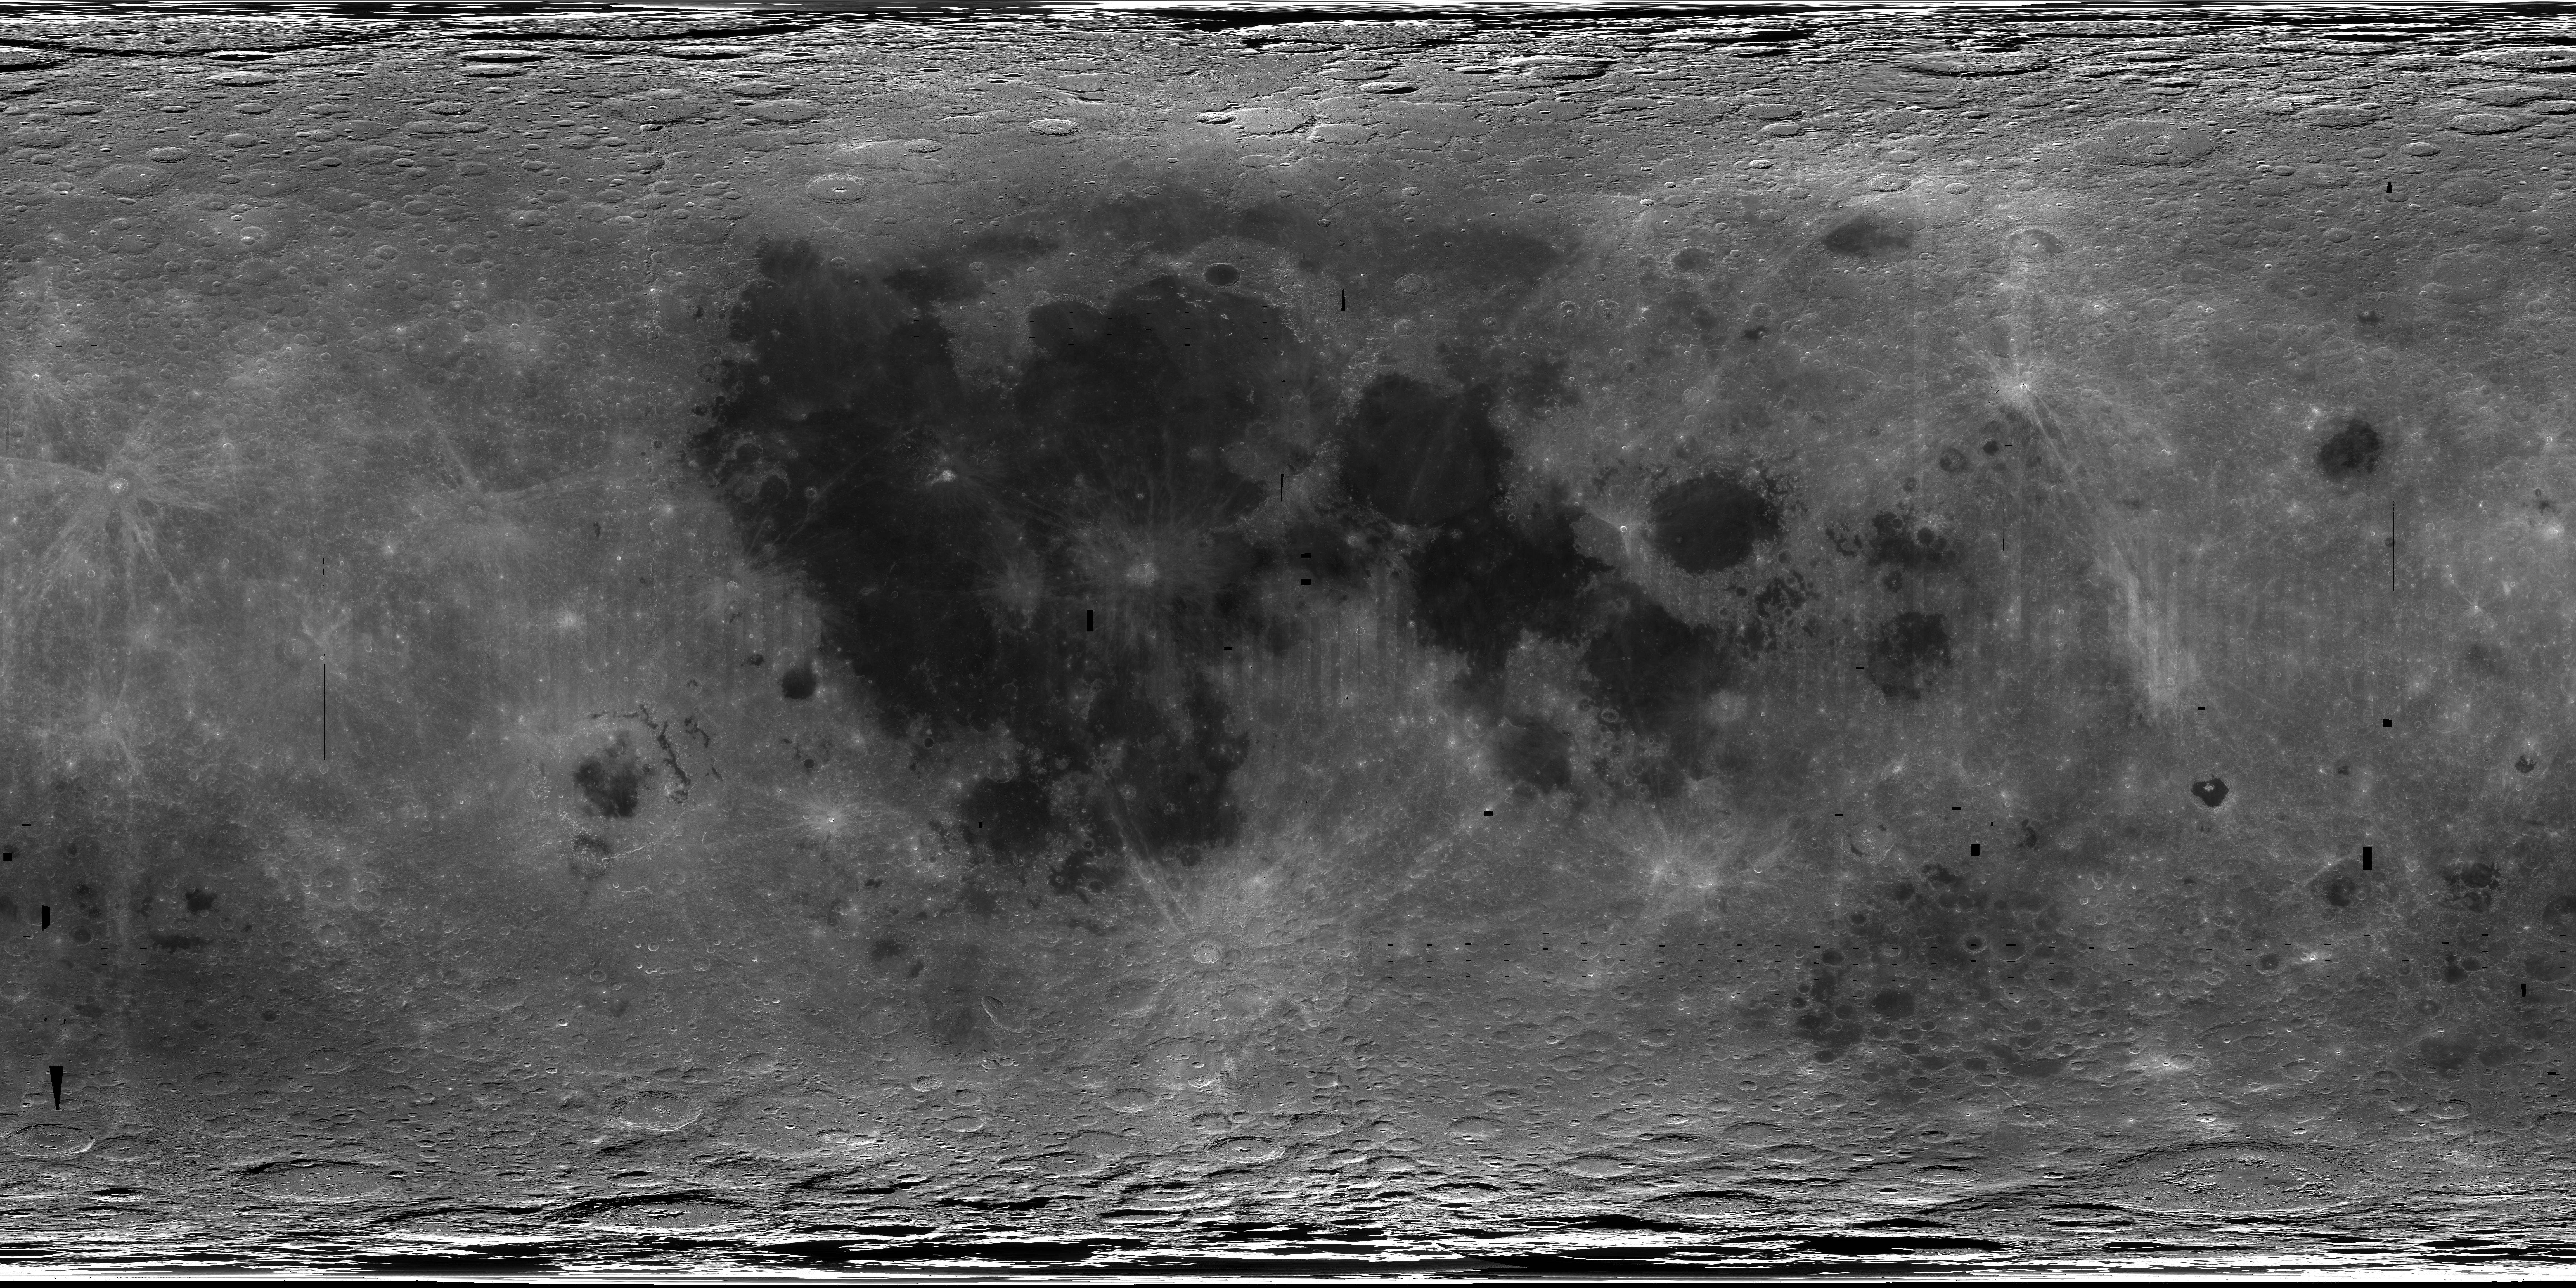 Lunar Clementine Global UVVIS 750nm Mosaic v2 118m | USGS ... on freezing moon, satellite map of earth, detailed map of the moon, globes of the moon, old maps of the moon, colonization of the moon, earth orbiting the moon, satelite view from moon, google moon, terrain of the moon, temperature of the moon, atlas of the moon, labeled map of the moon, inner core of the moon, satellite engineer, gps of the moon, far side of the moon, satellite map of california, space maps of the moon, live feed of the moon,